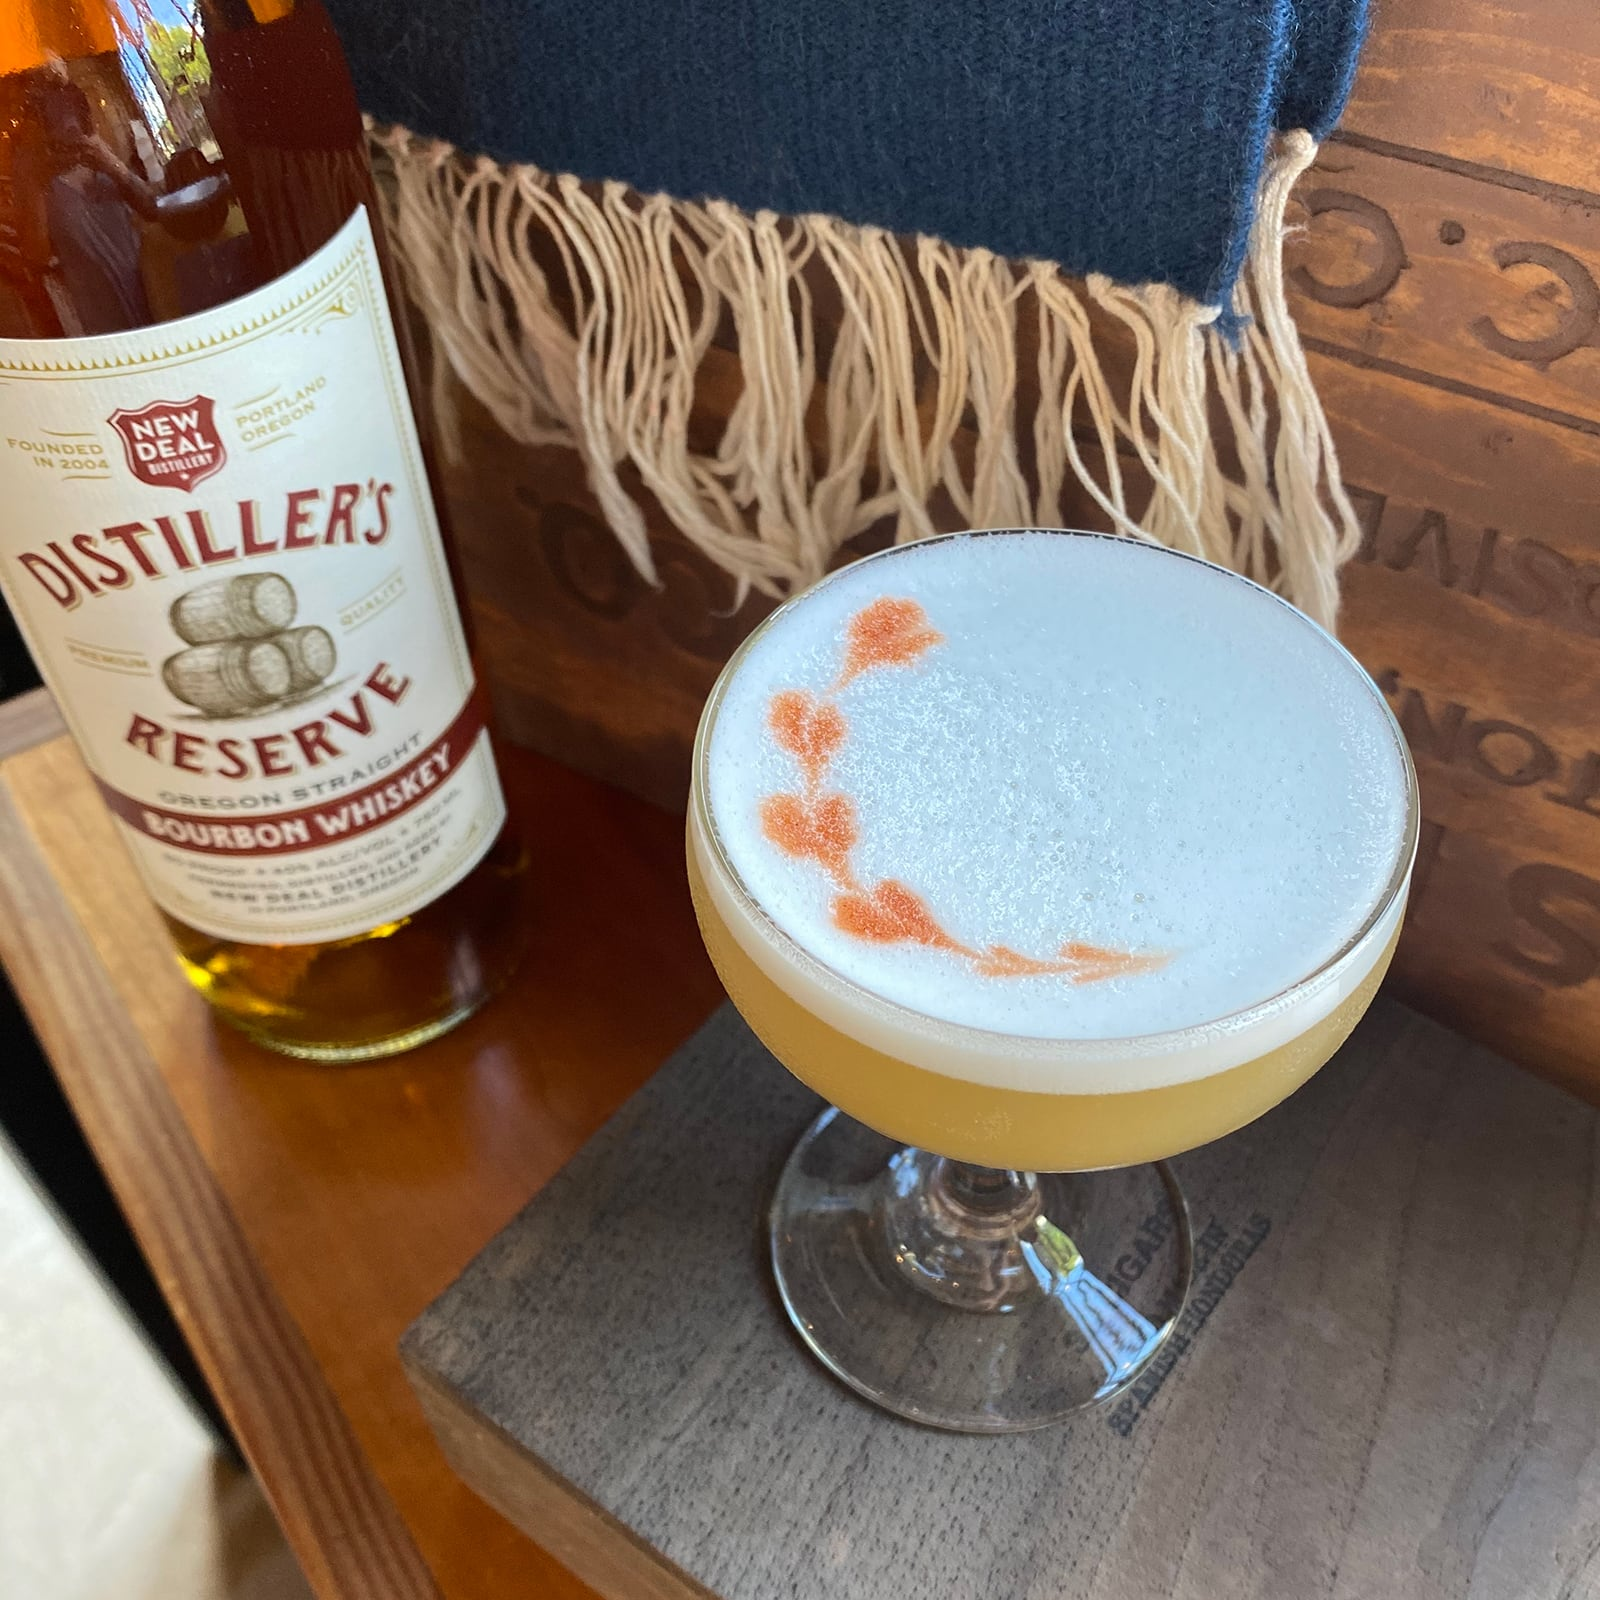 New Deal Whiskey Sour Cocktail Recipe